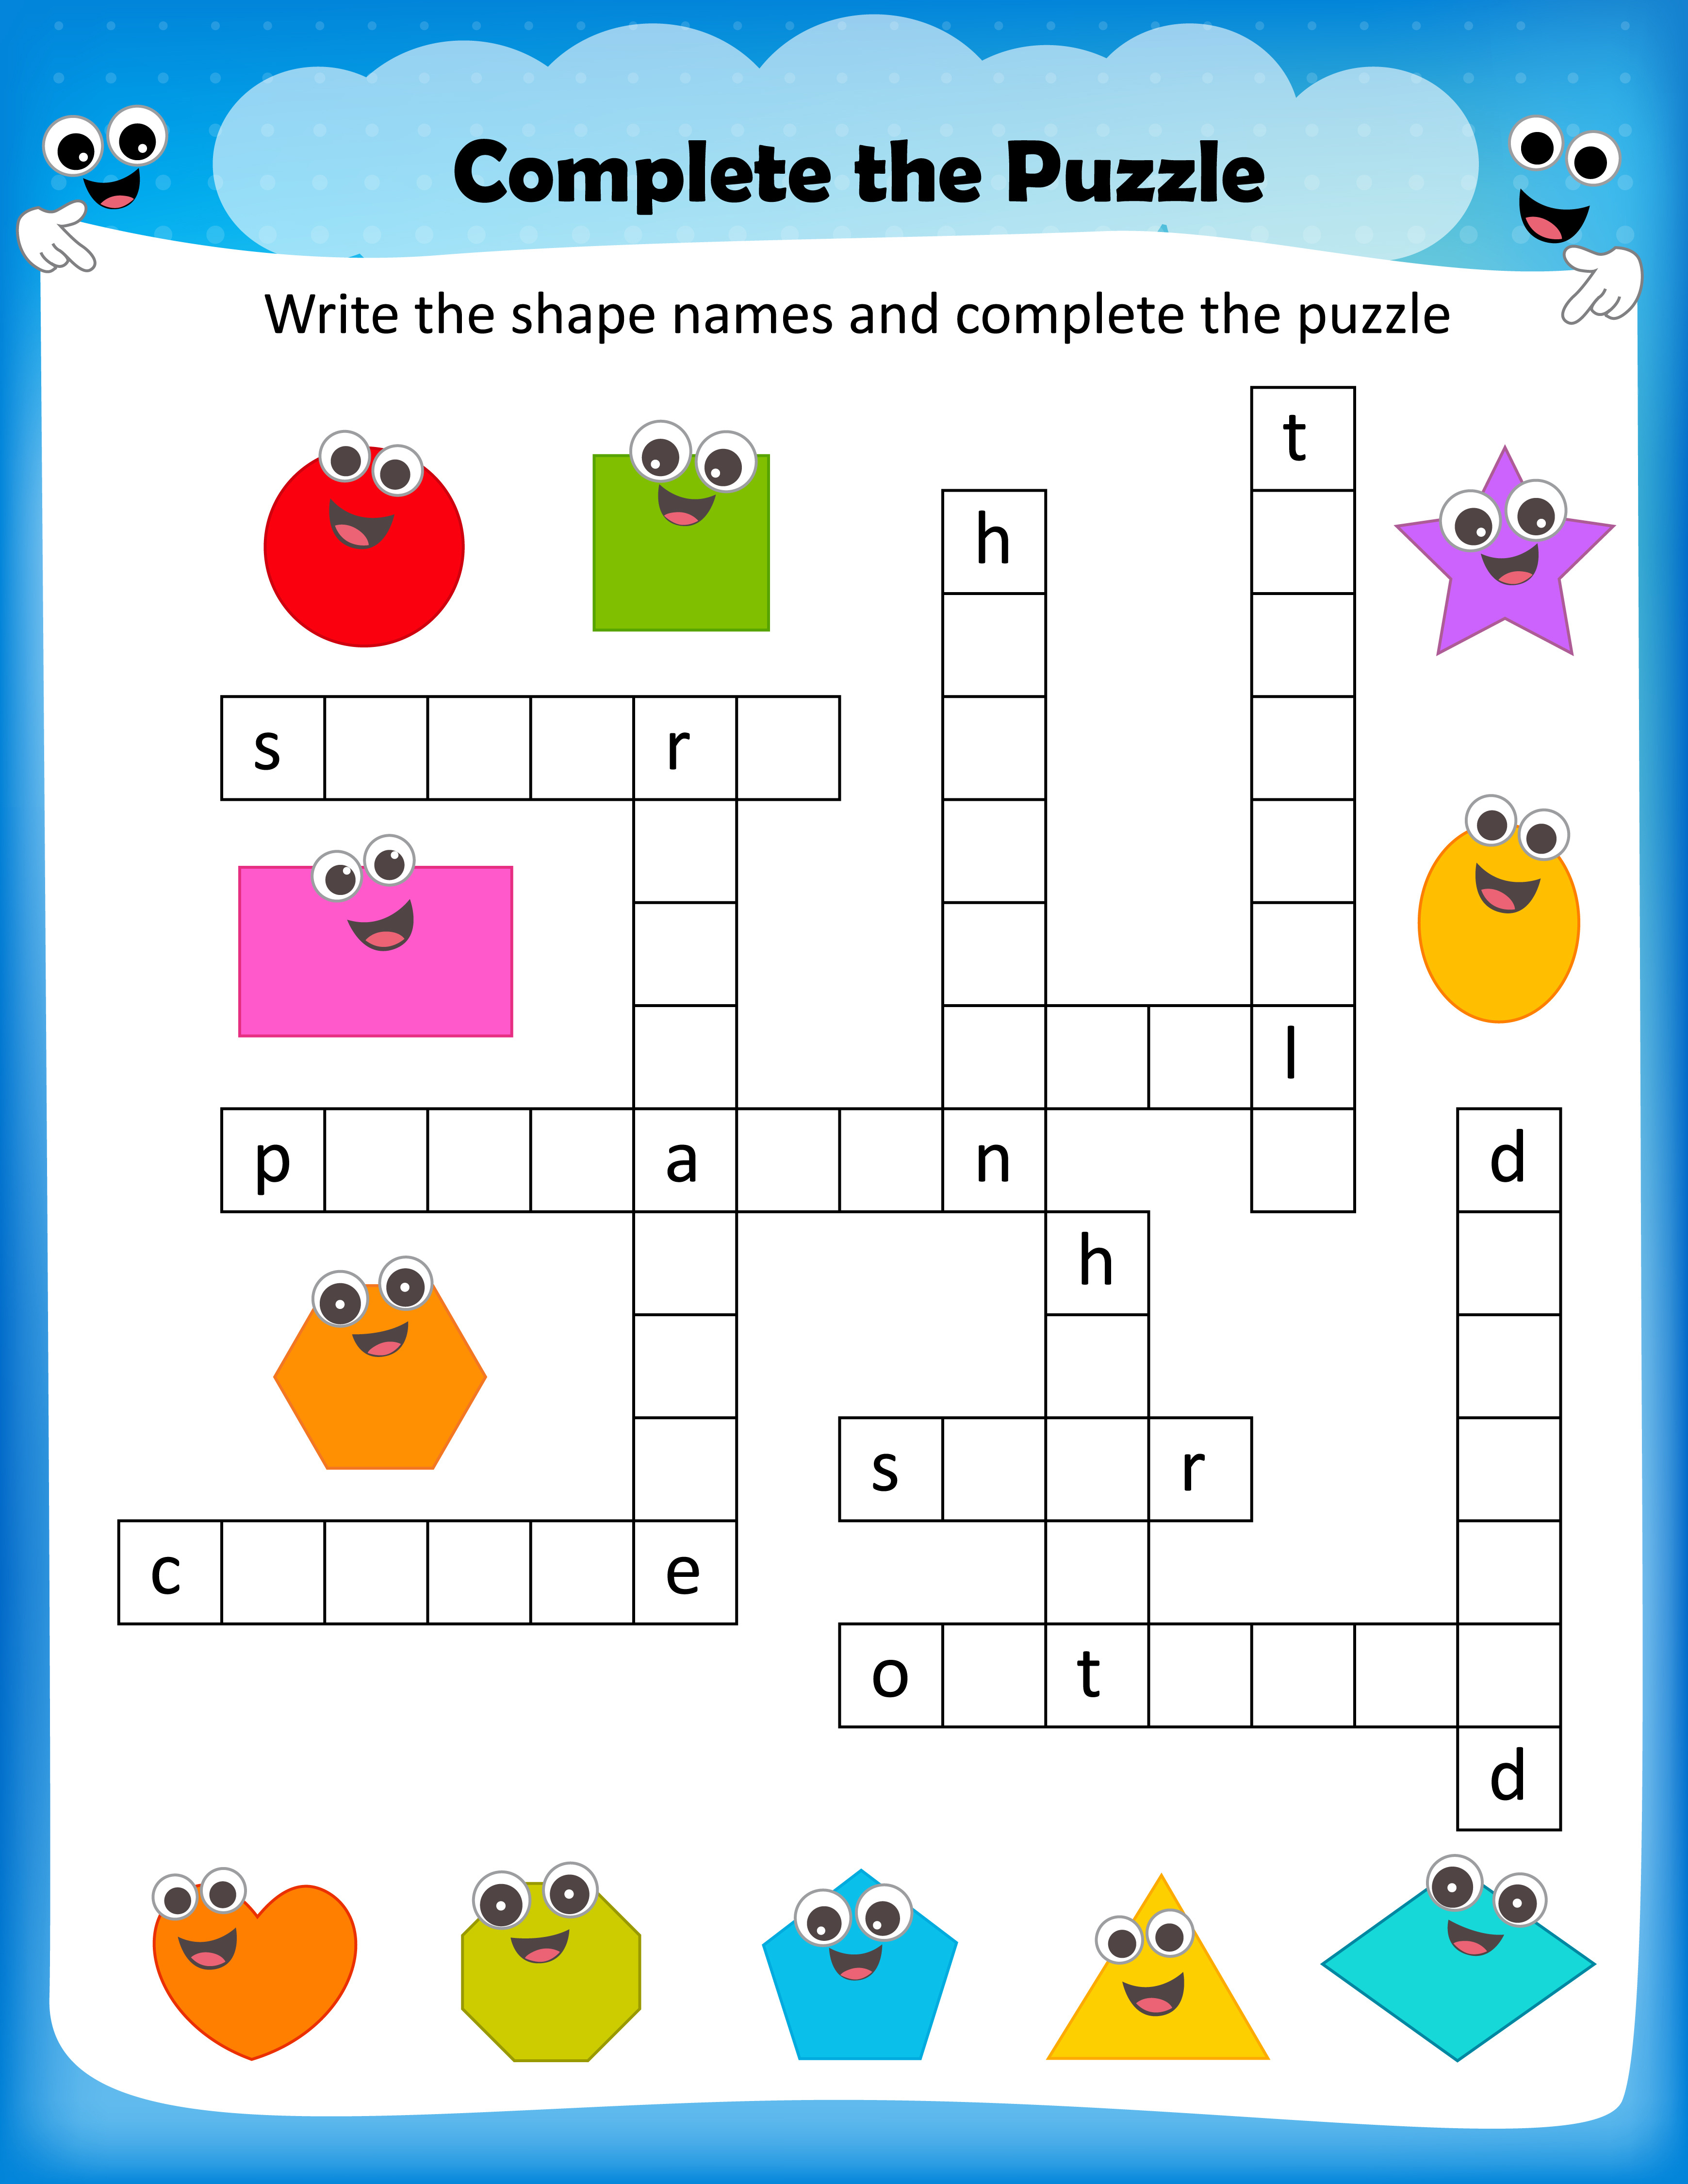 Free Printable Crosswords With Top 10 Benefits For Our Kids - Recycling Crossword Puzzle Printable